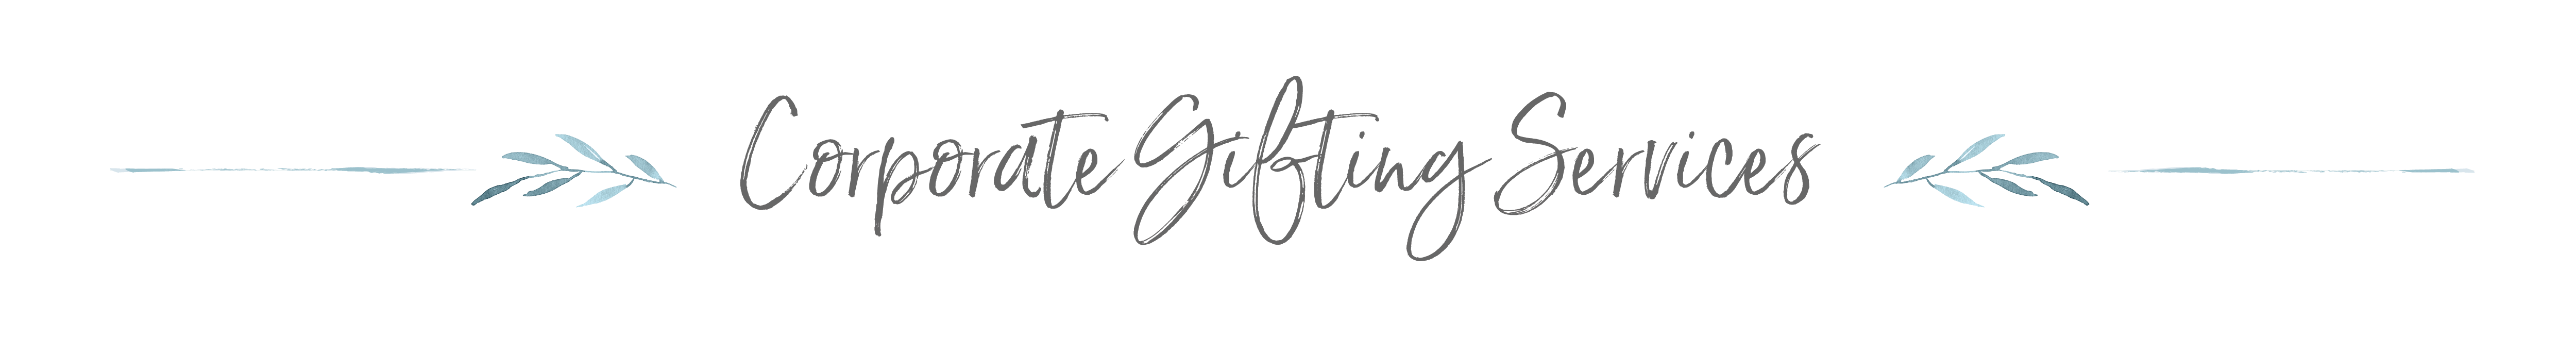 Corporate Gifting Services